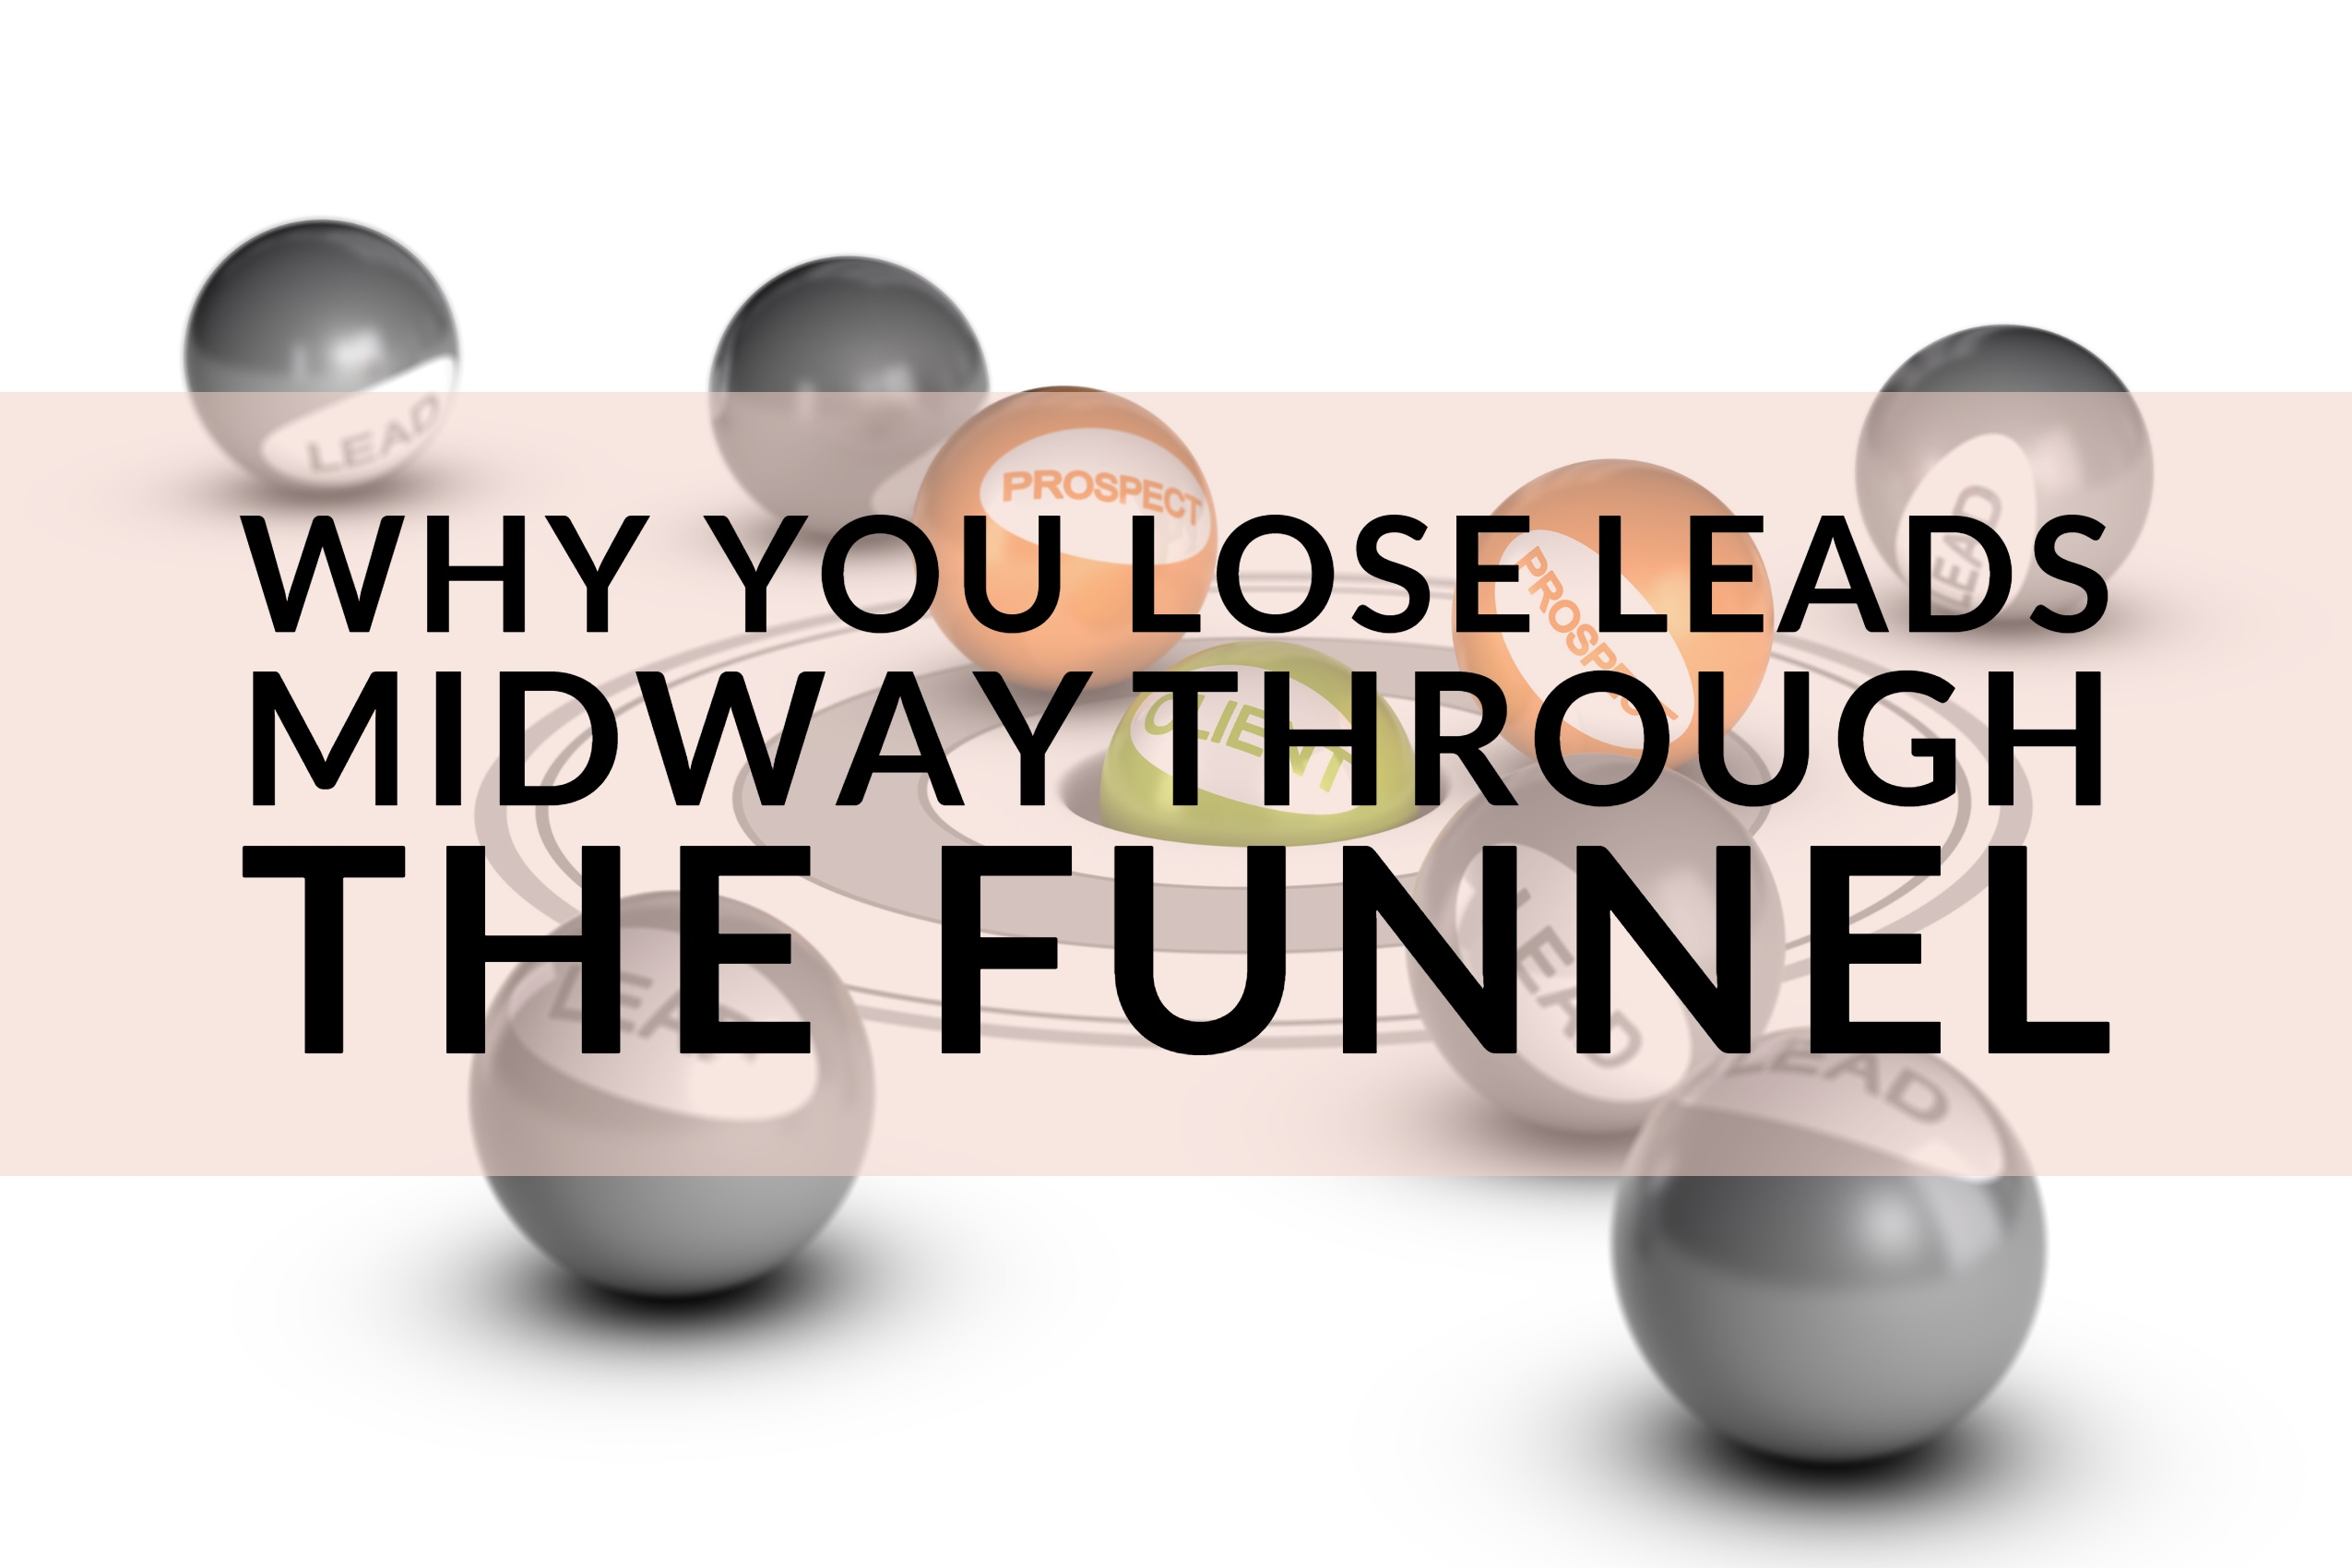 Why You Lose Leads Midway Through The Funnel